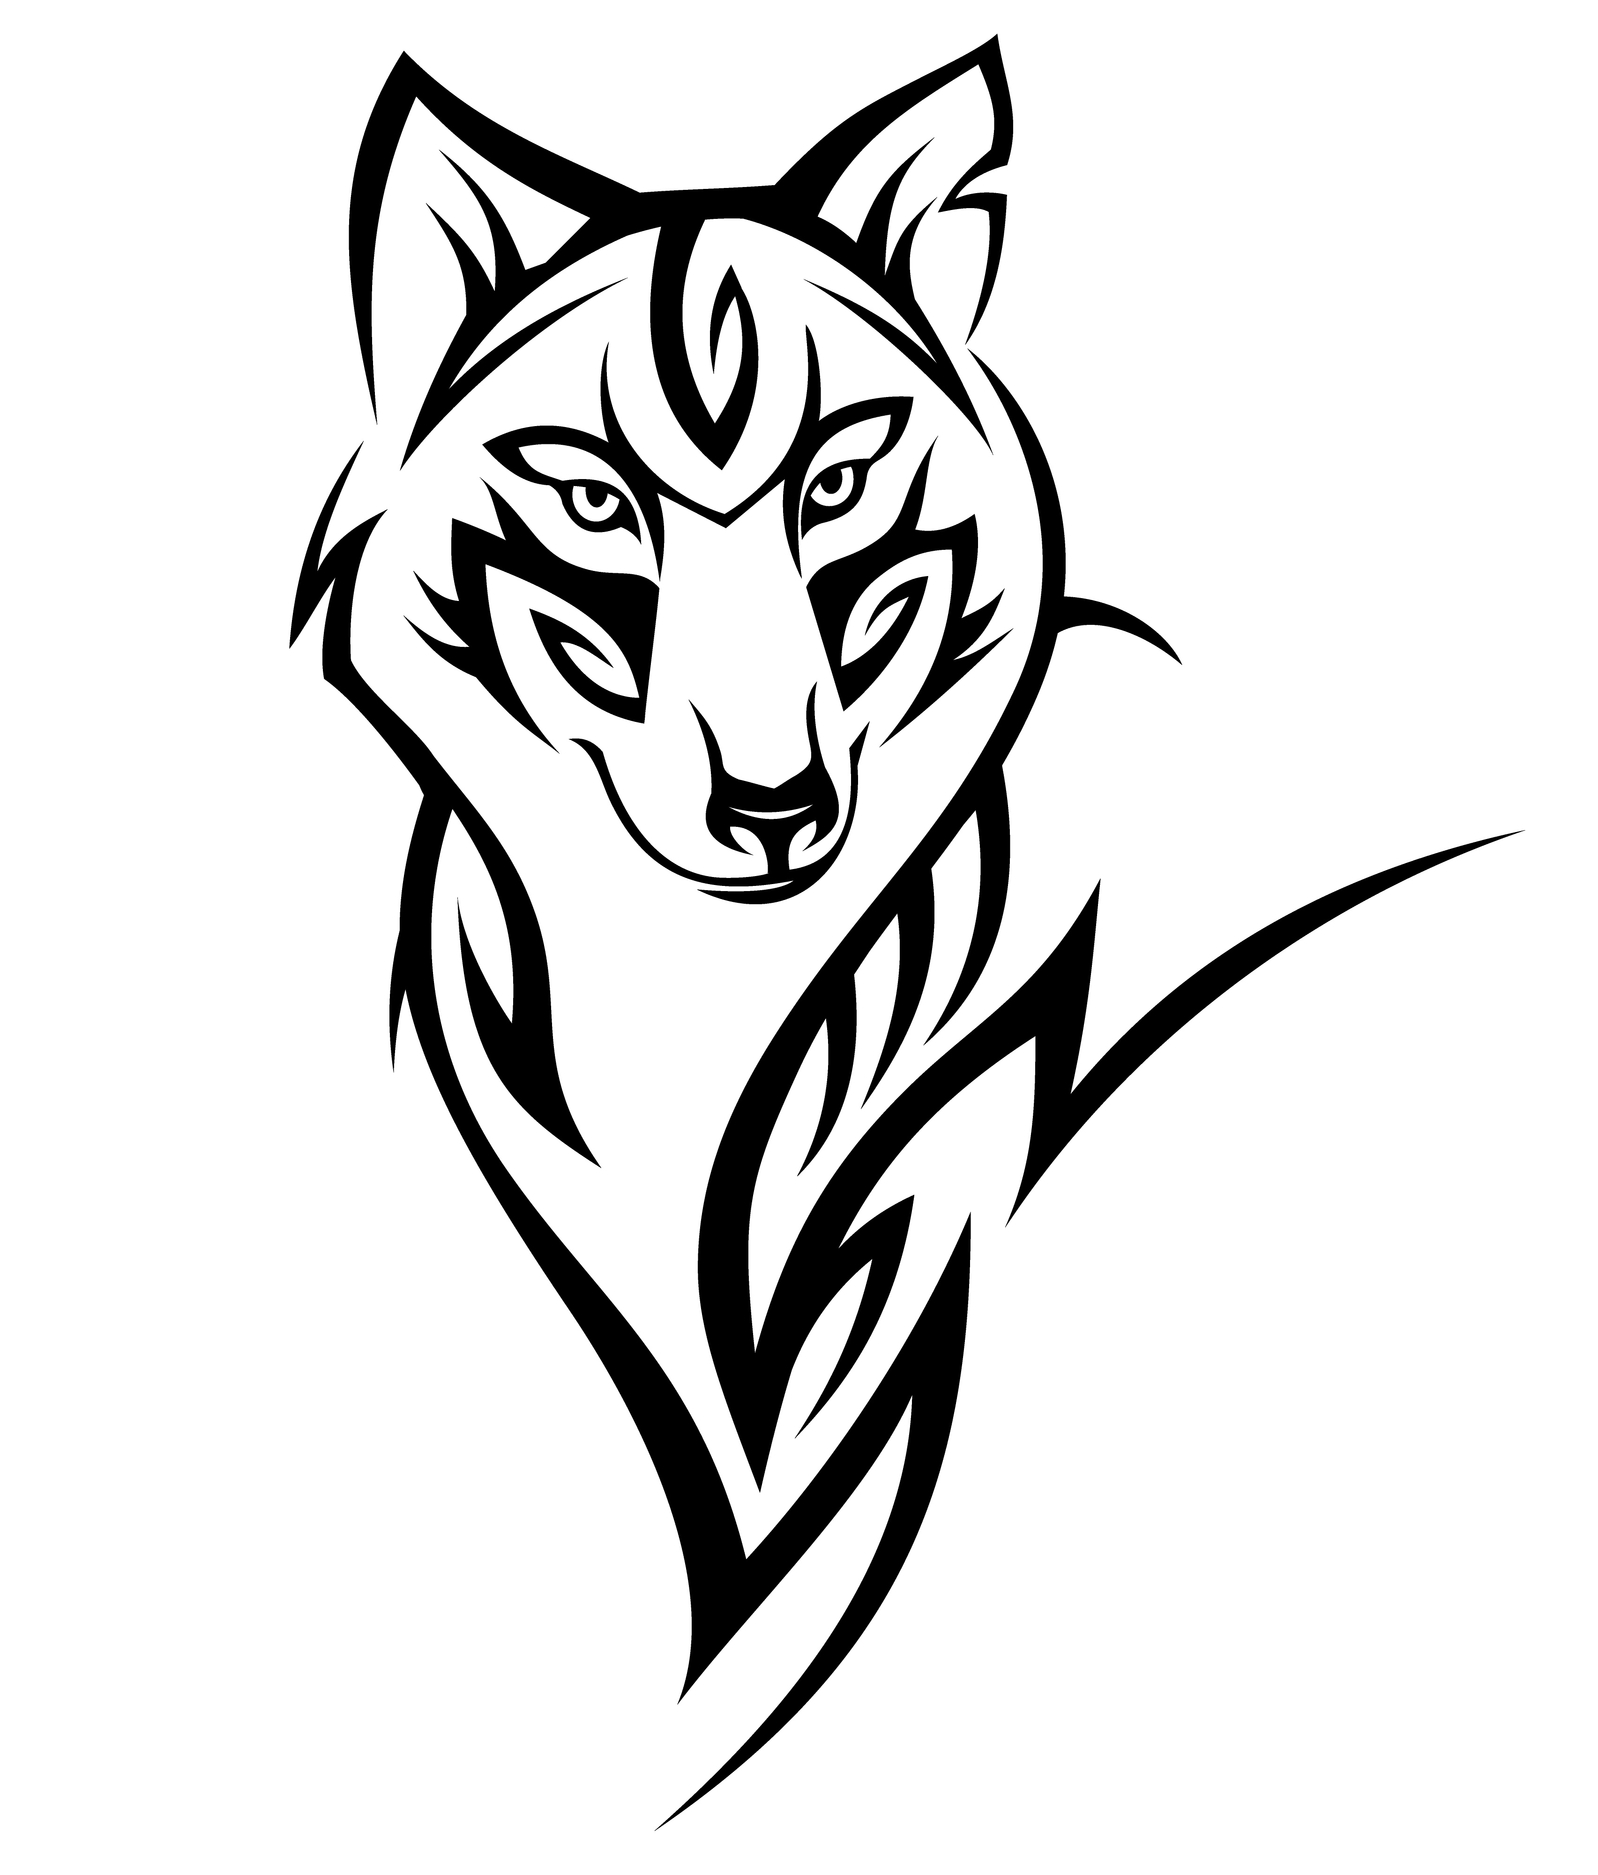 Wolf Tattoo Meaning Tattoos With Meaning